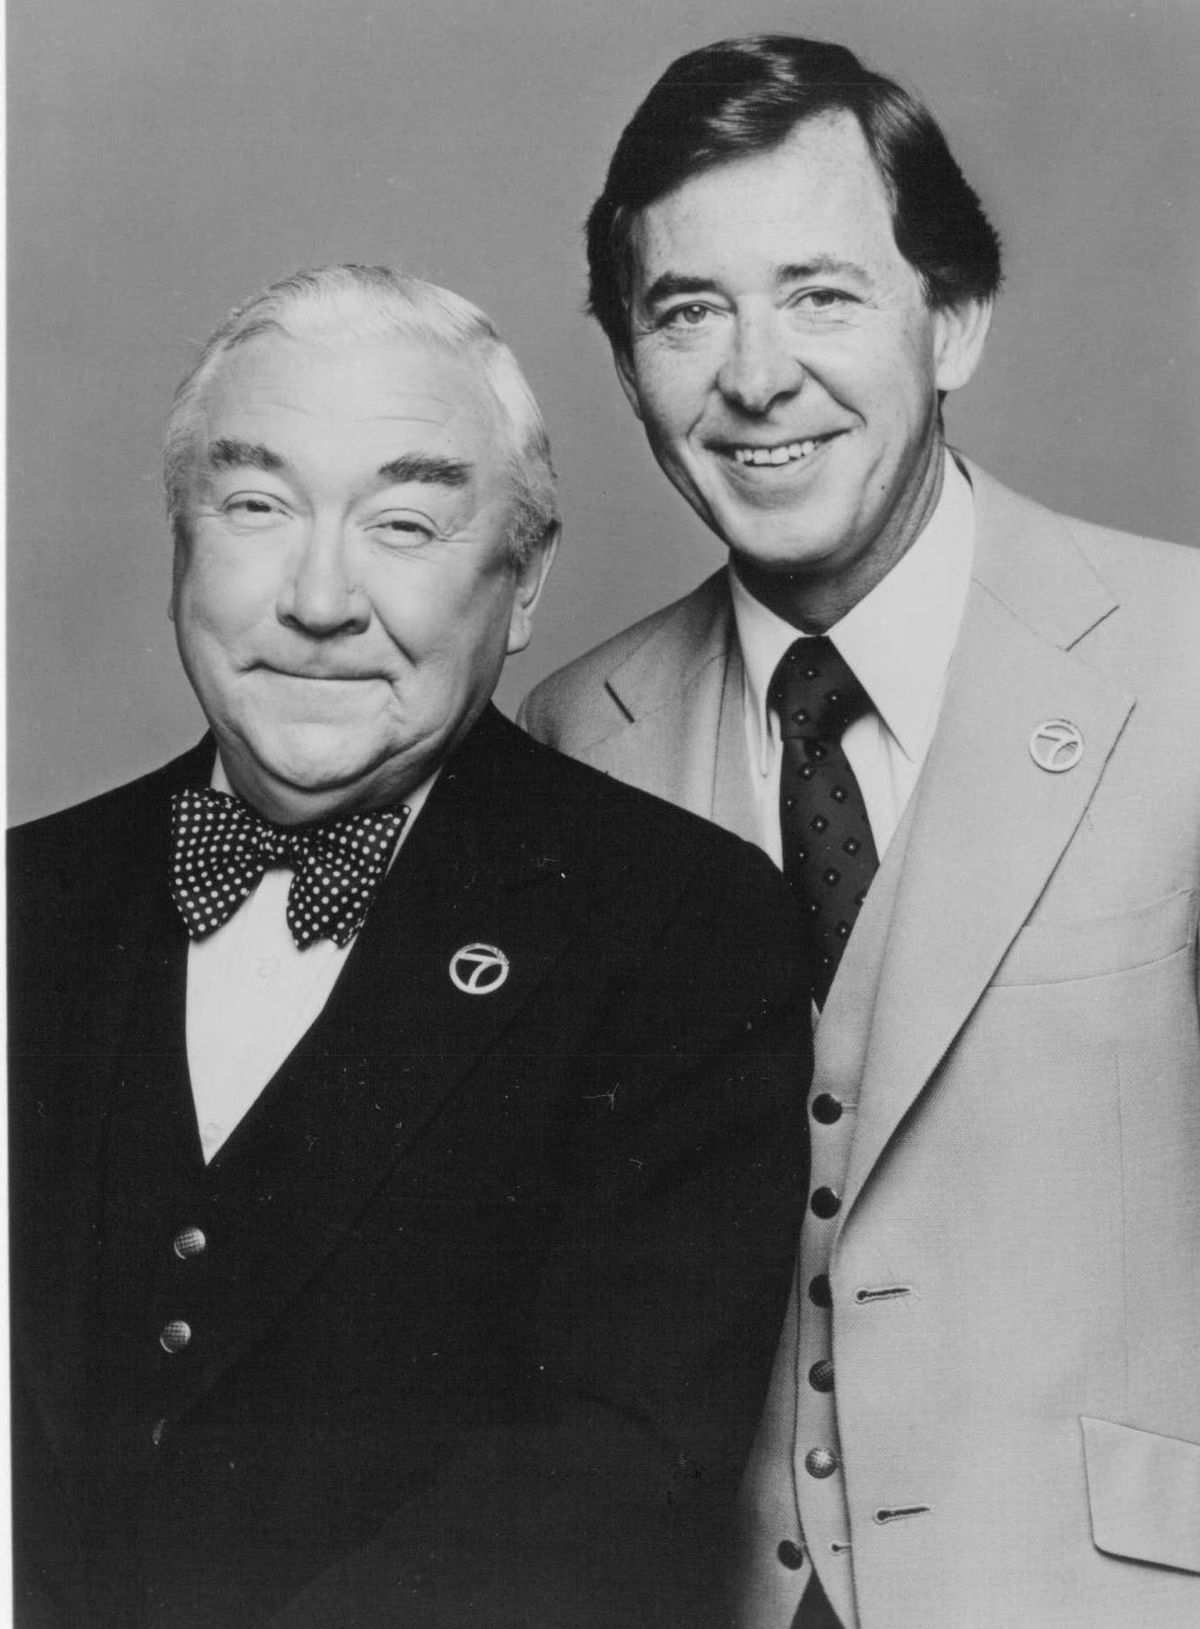 """On Feb. 12, 1968, the """"Eyewitness News"""" team concept was born when longtime Chicago news anchor Fahey Flynn (left) joined Joel Daly at WLS-TV, ushering in a new brand of television journalism derided by some as """"happy talk."""""""